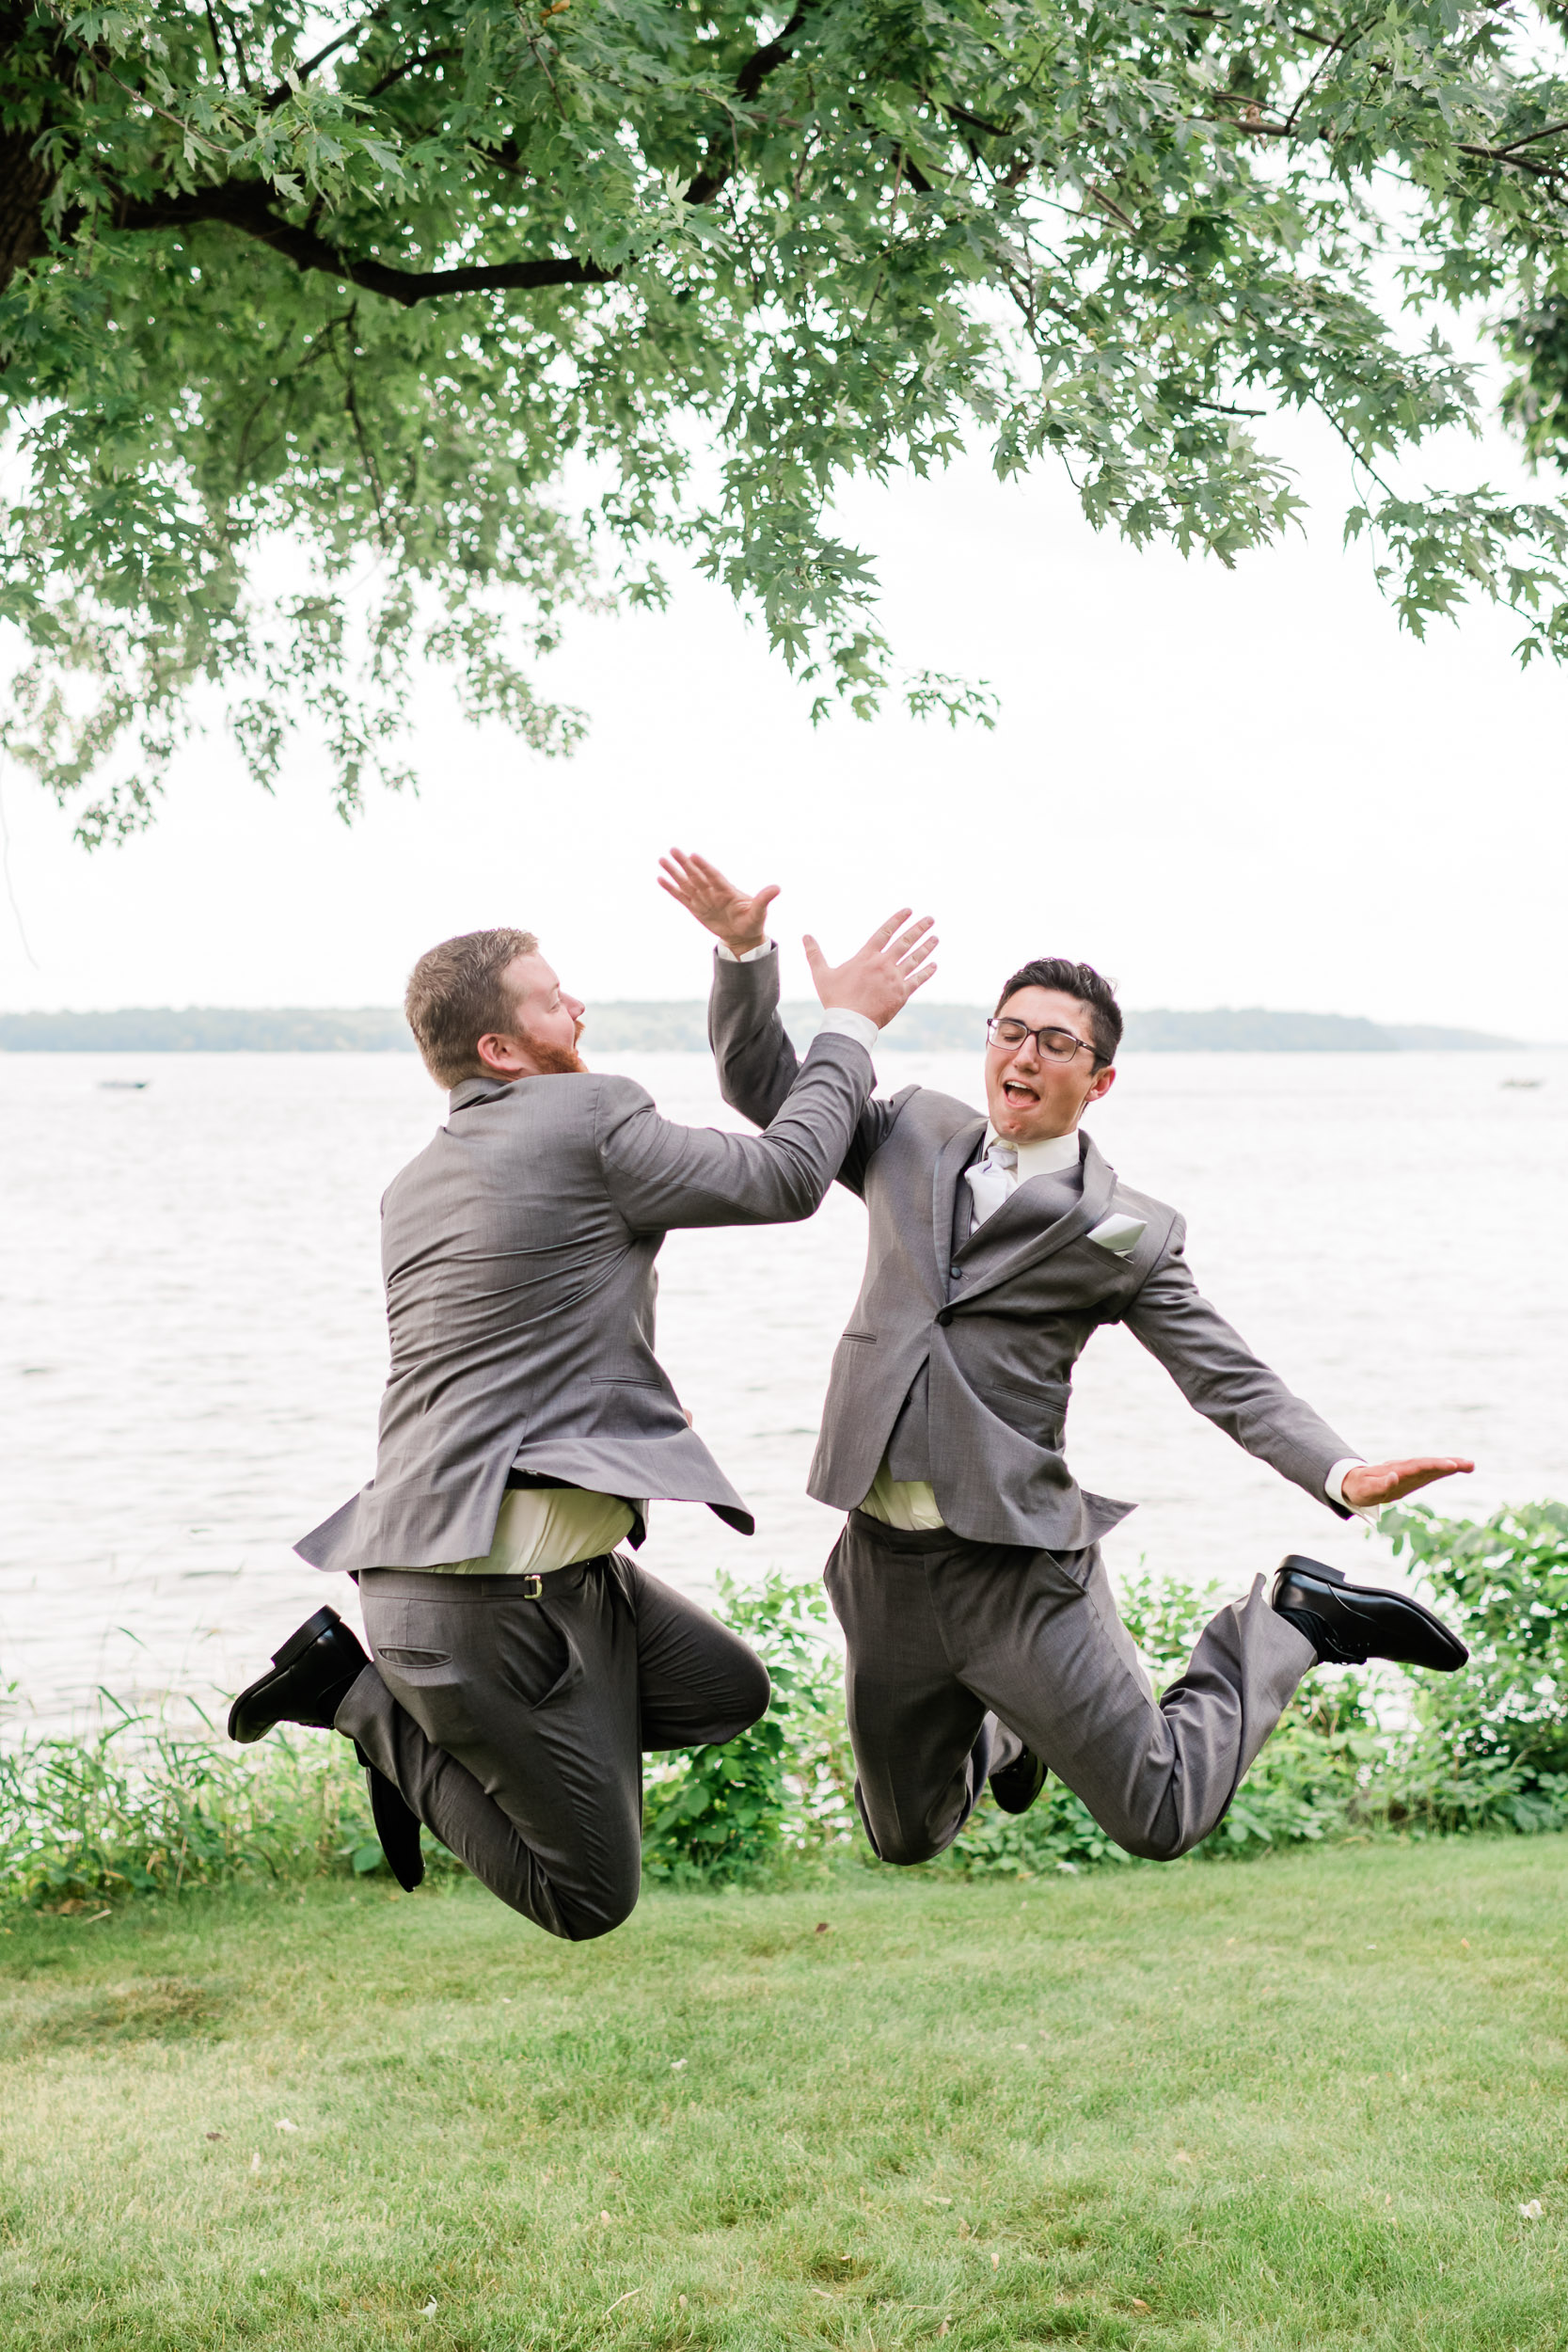 Groomsman and groom jump and high five each other